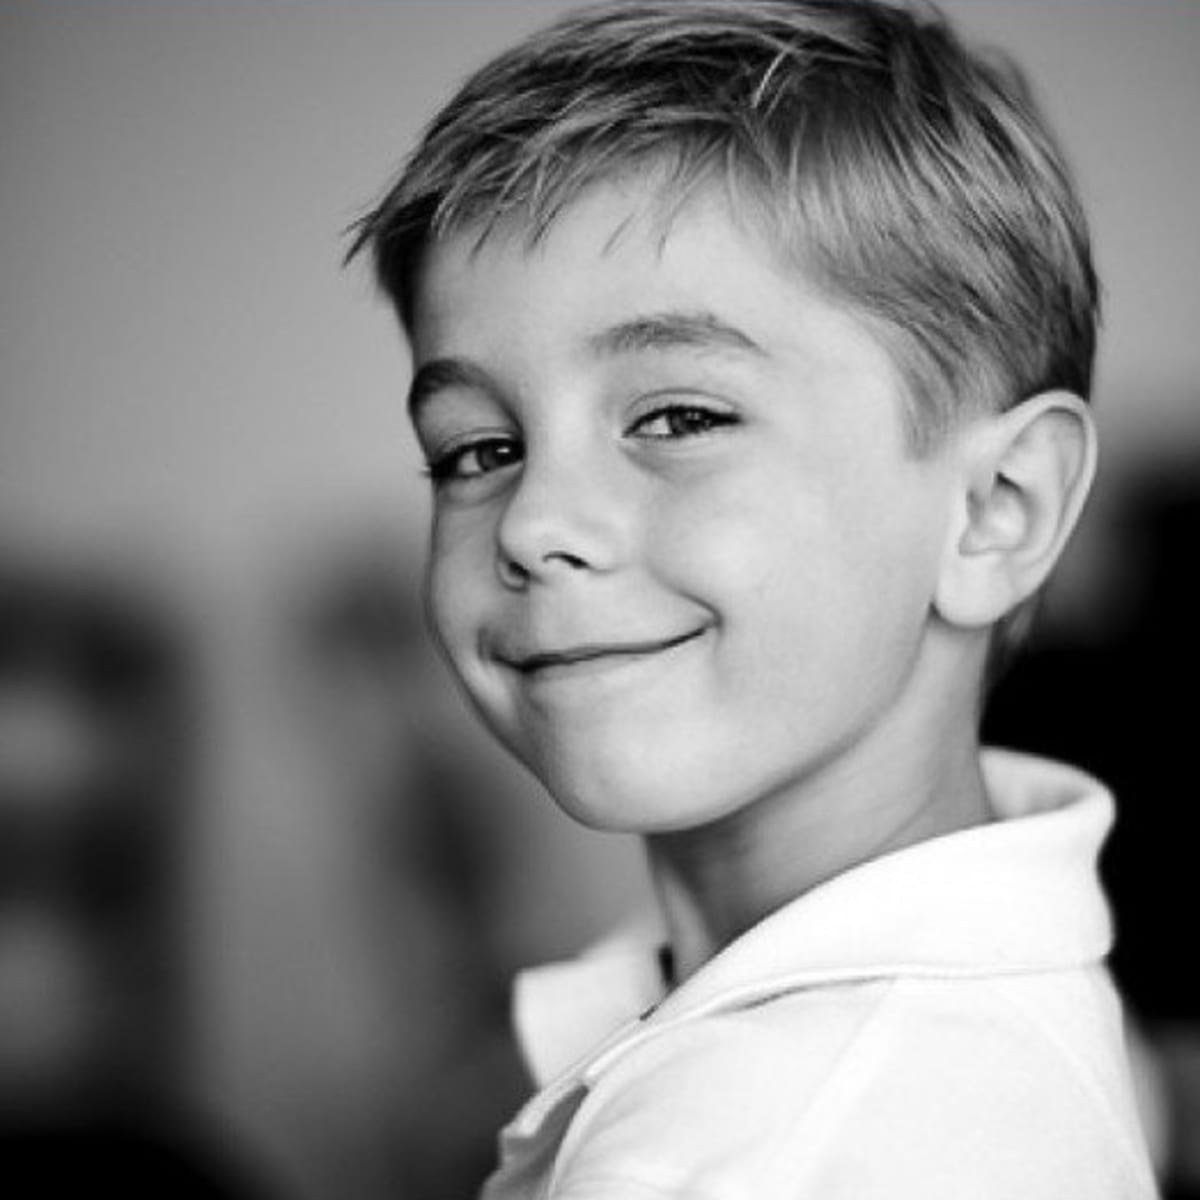 Haircuts For Little Boys The Long And The Short Of It Bellatory Fashion And Beauty